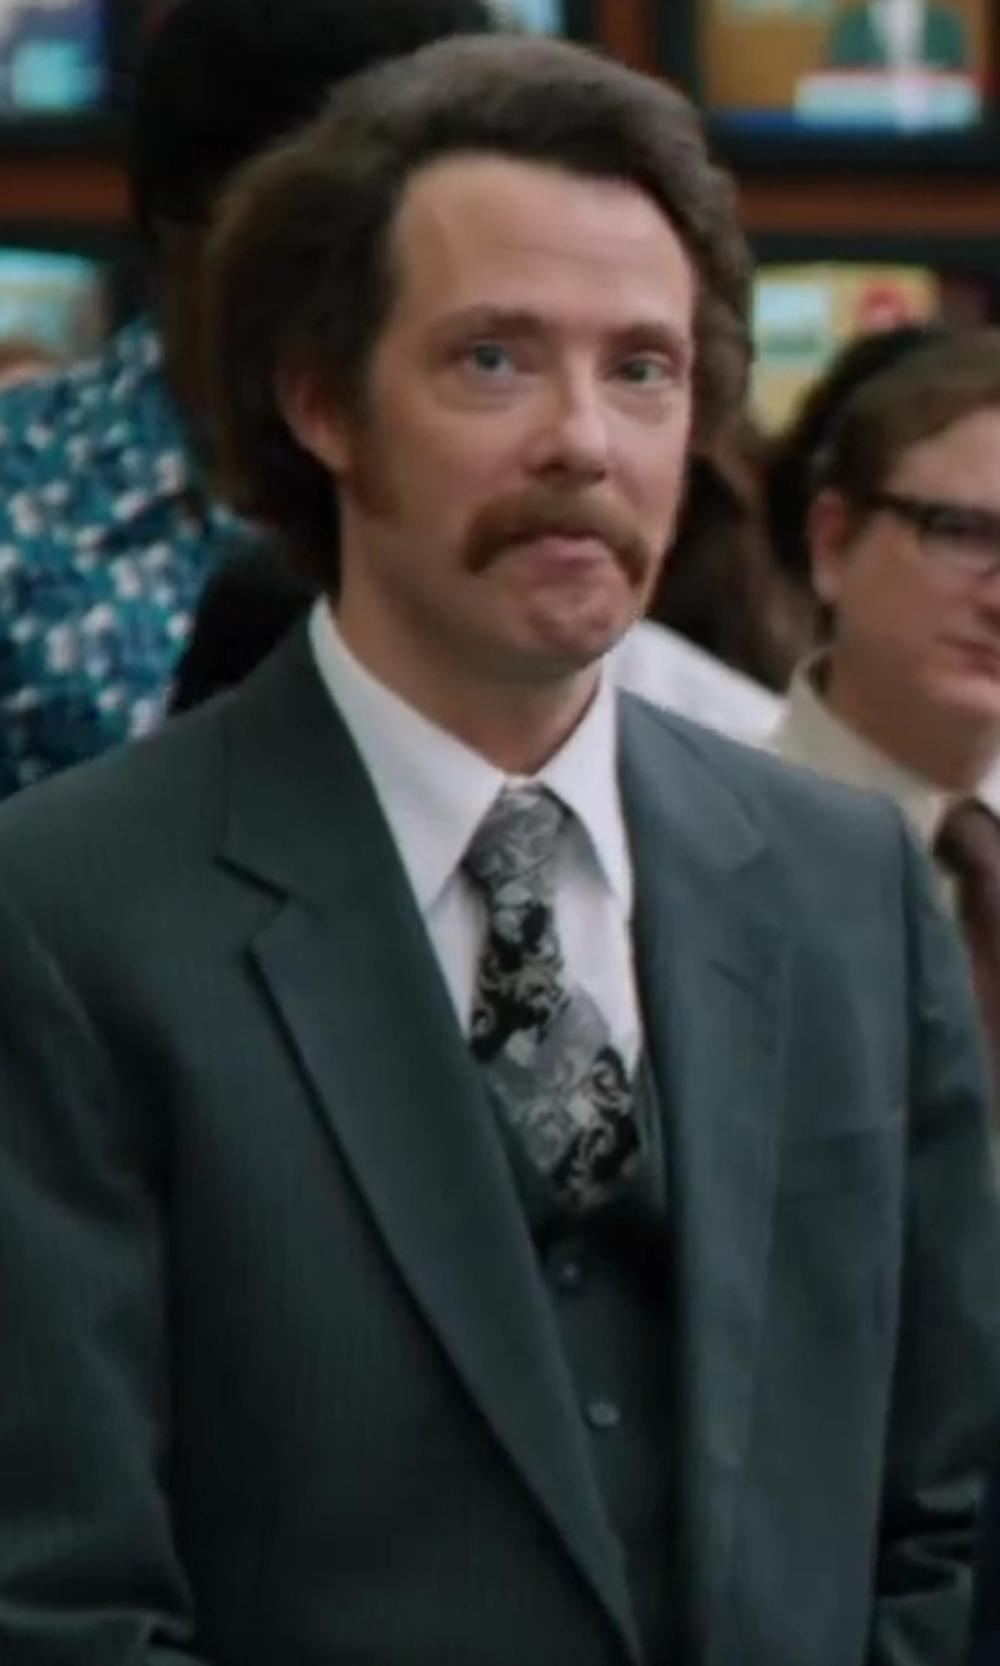 Patrick J. Williams with Emilio Pucci Vintage Patterned Tie in Anchorman 2: The Legend Continues